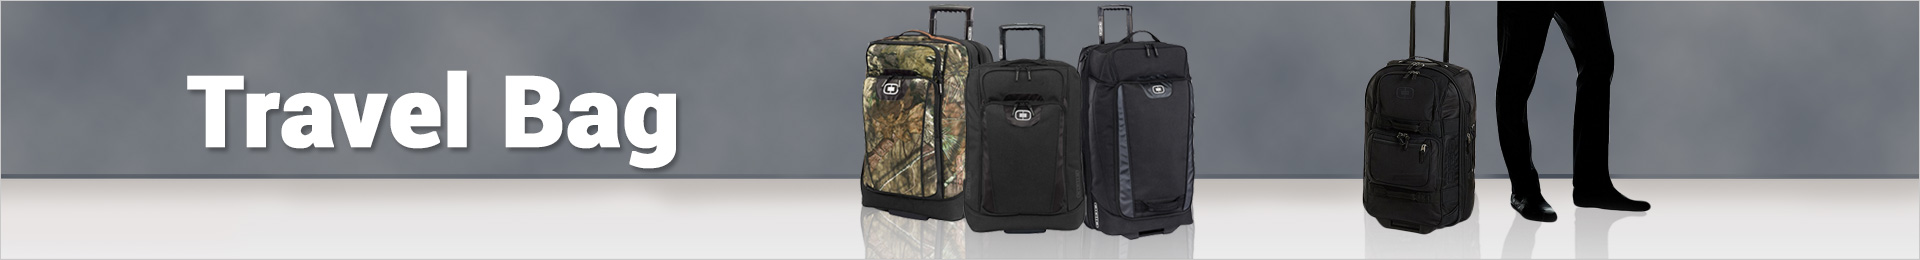 Wholesale Travel and Luggage Bags